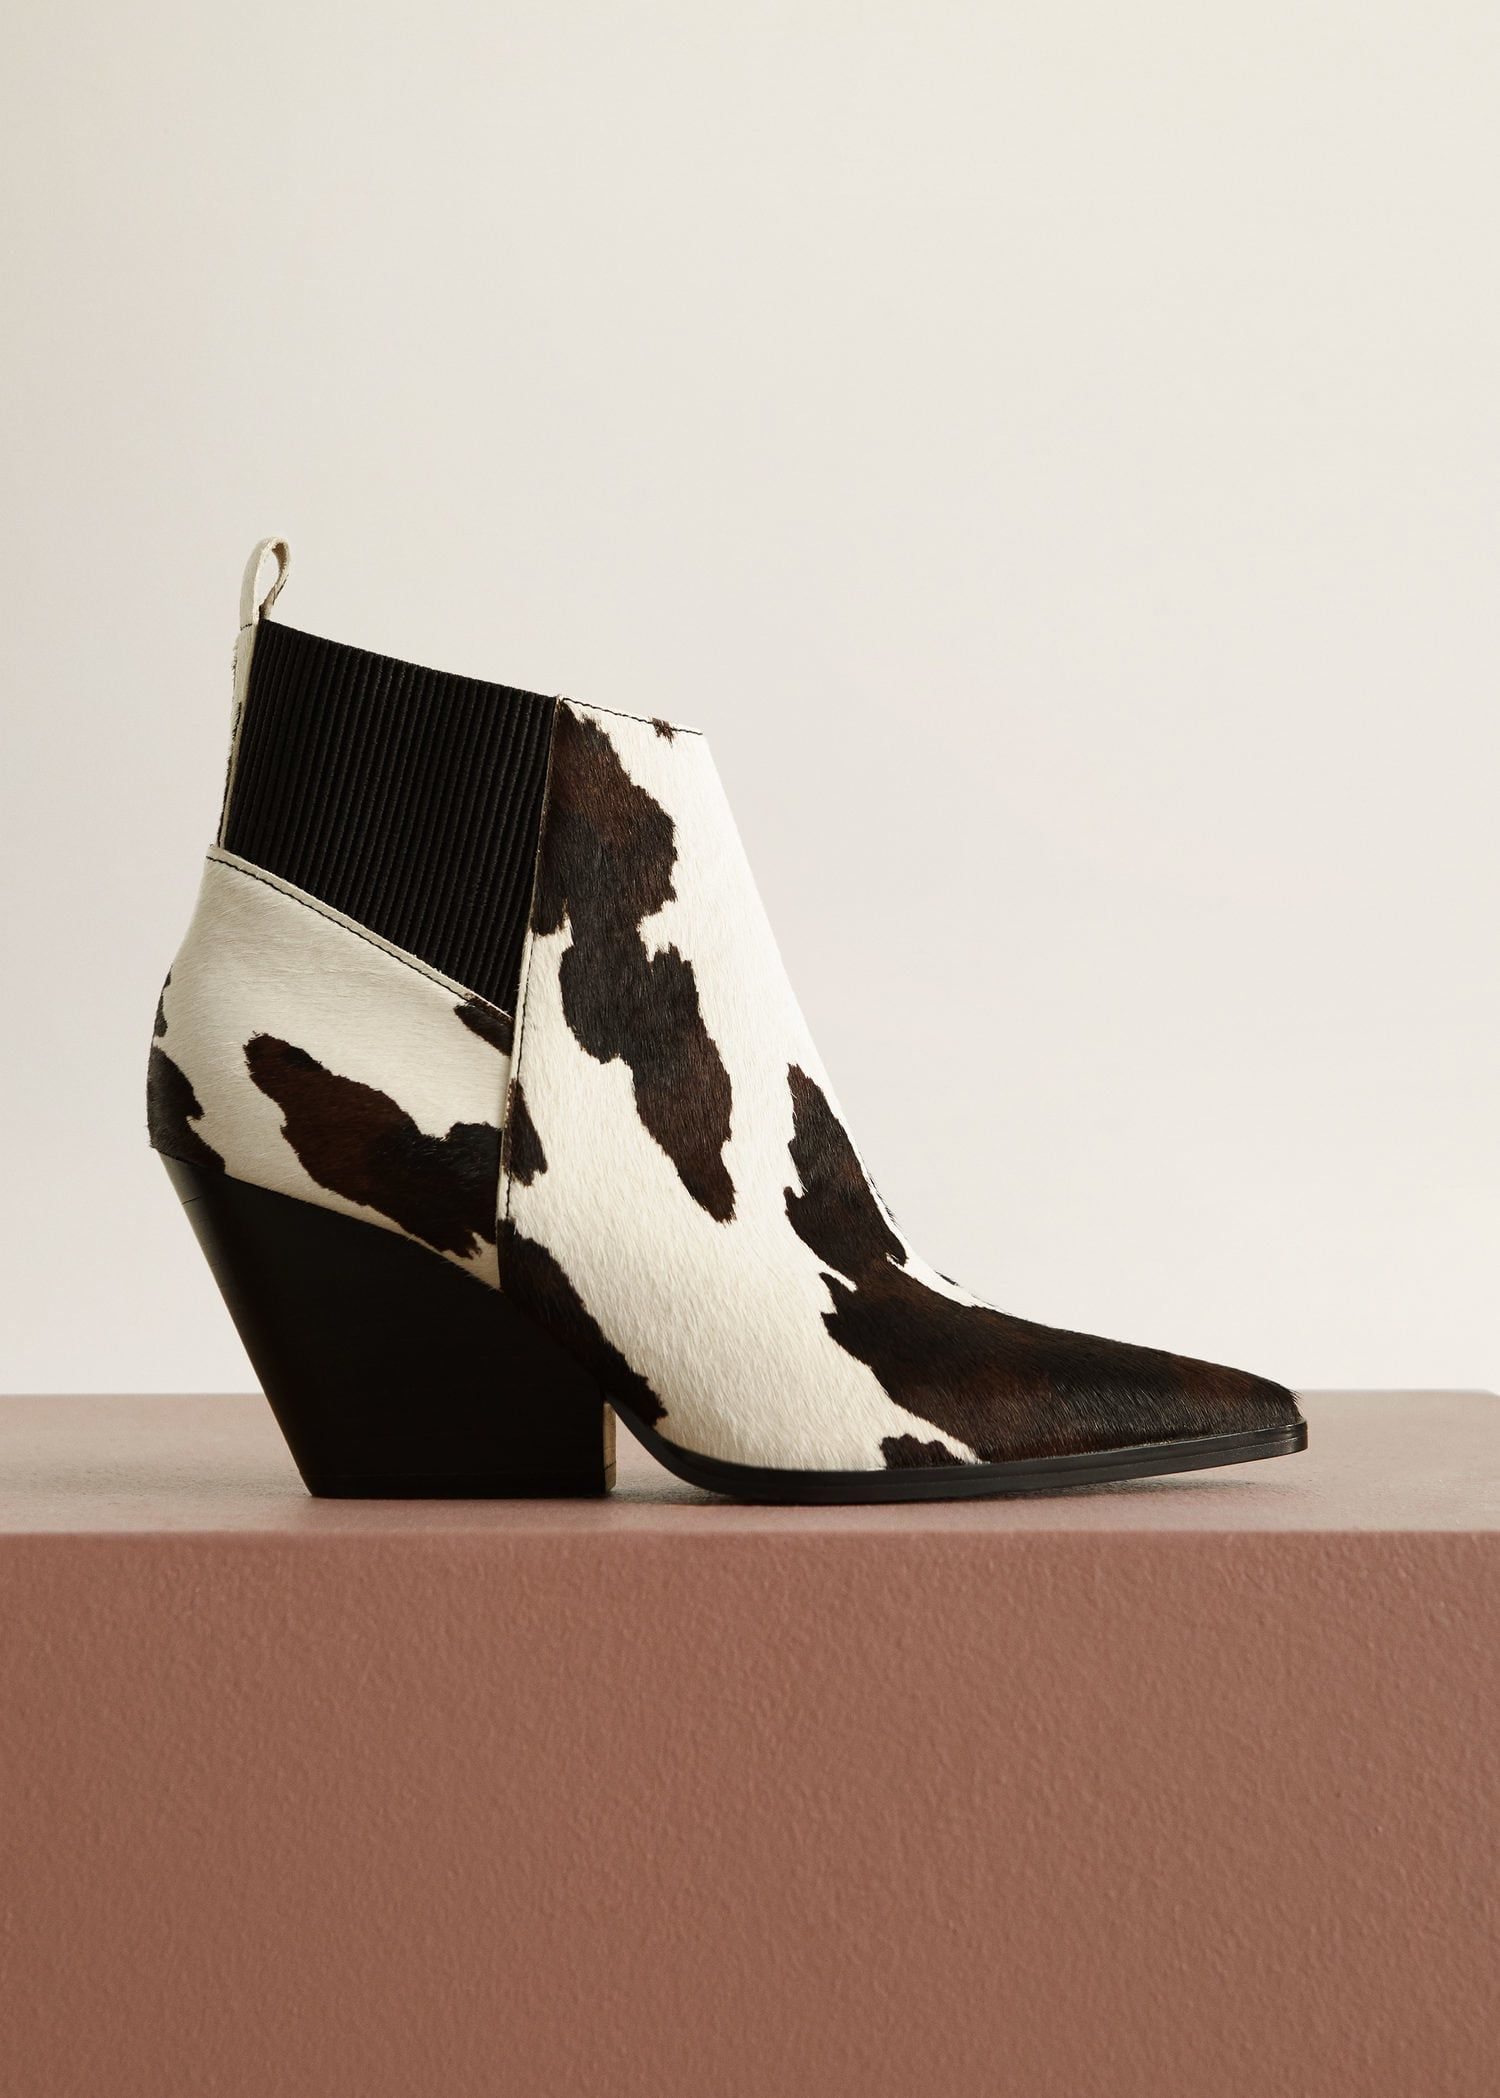 48441ce6fe9 Leather cowboy ankle boots - Women in 2019 | Michelle stuff | Shoes ...